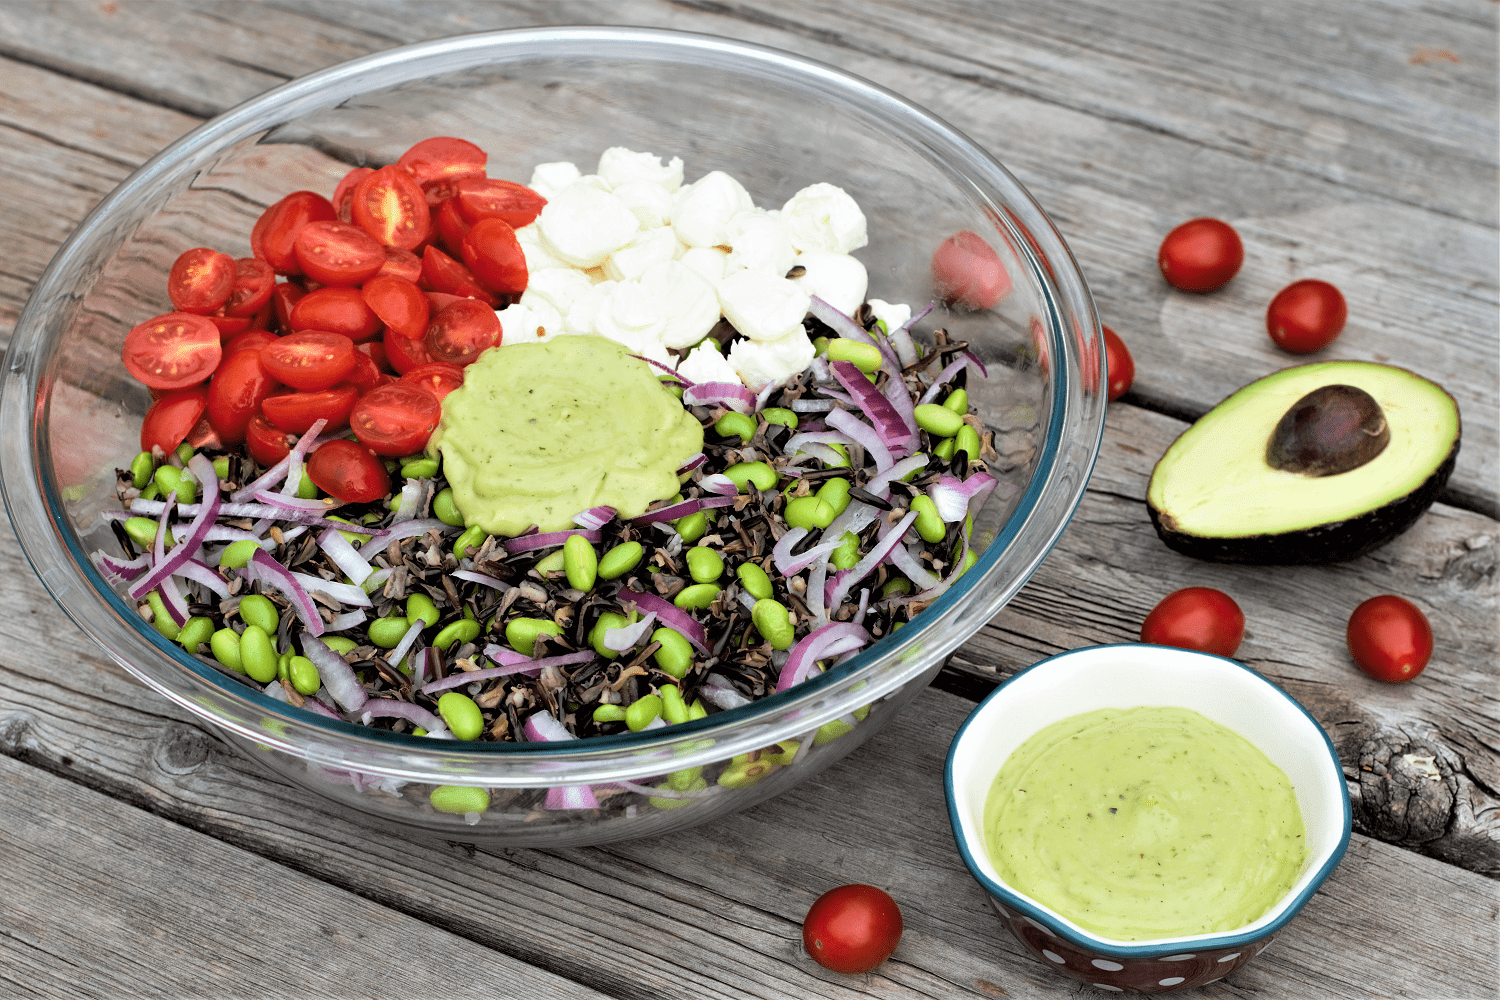 Wild Rice Edamame Salad with Avocado Basil Dressing